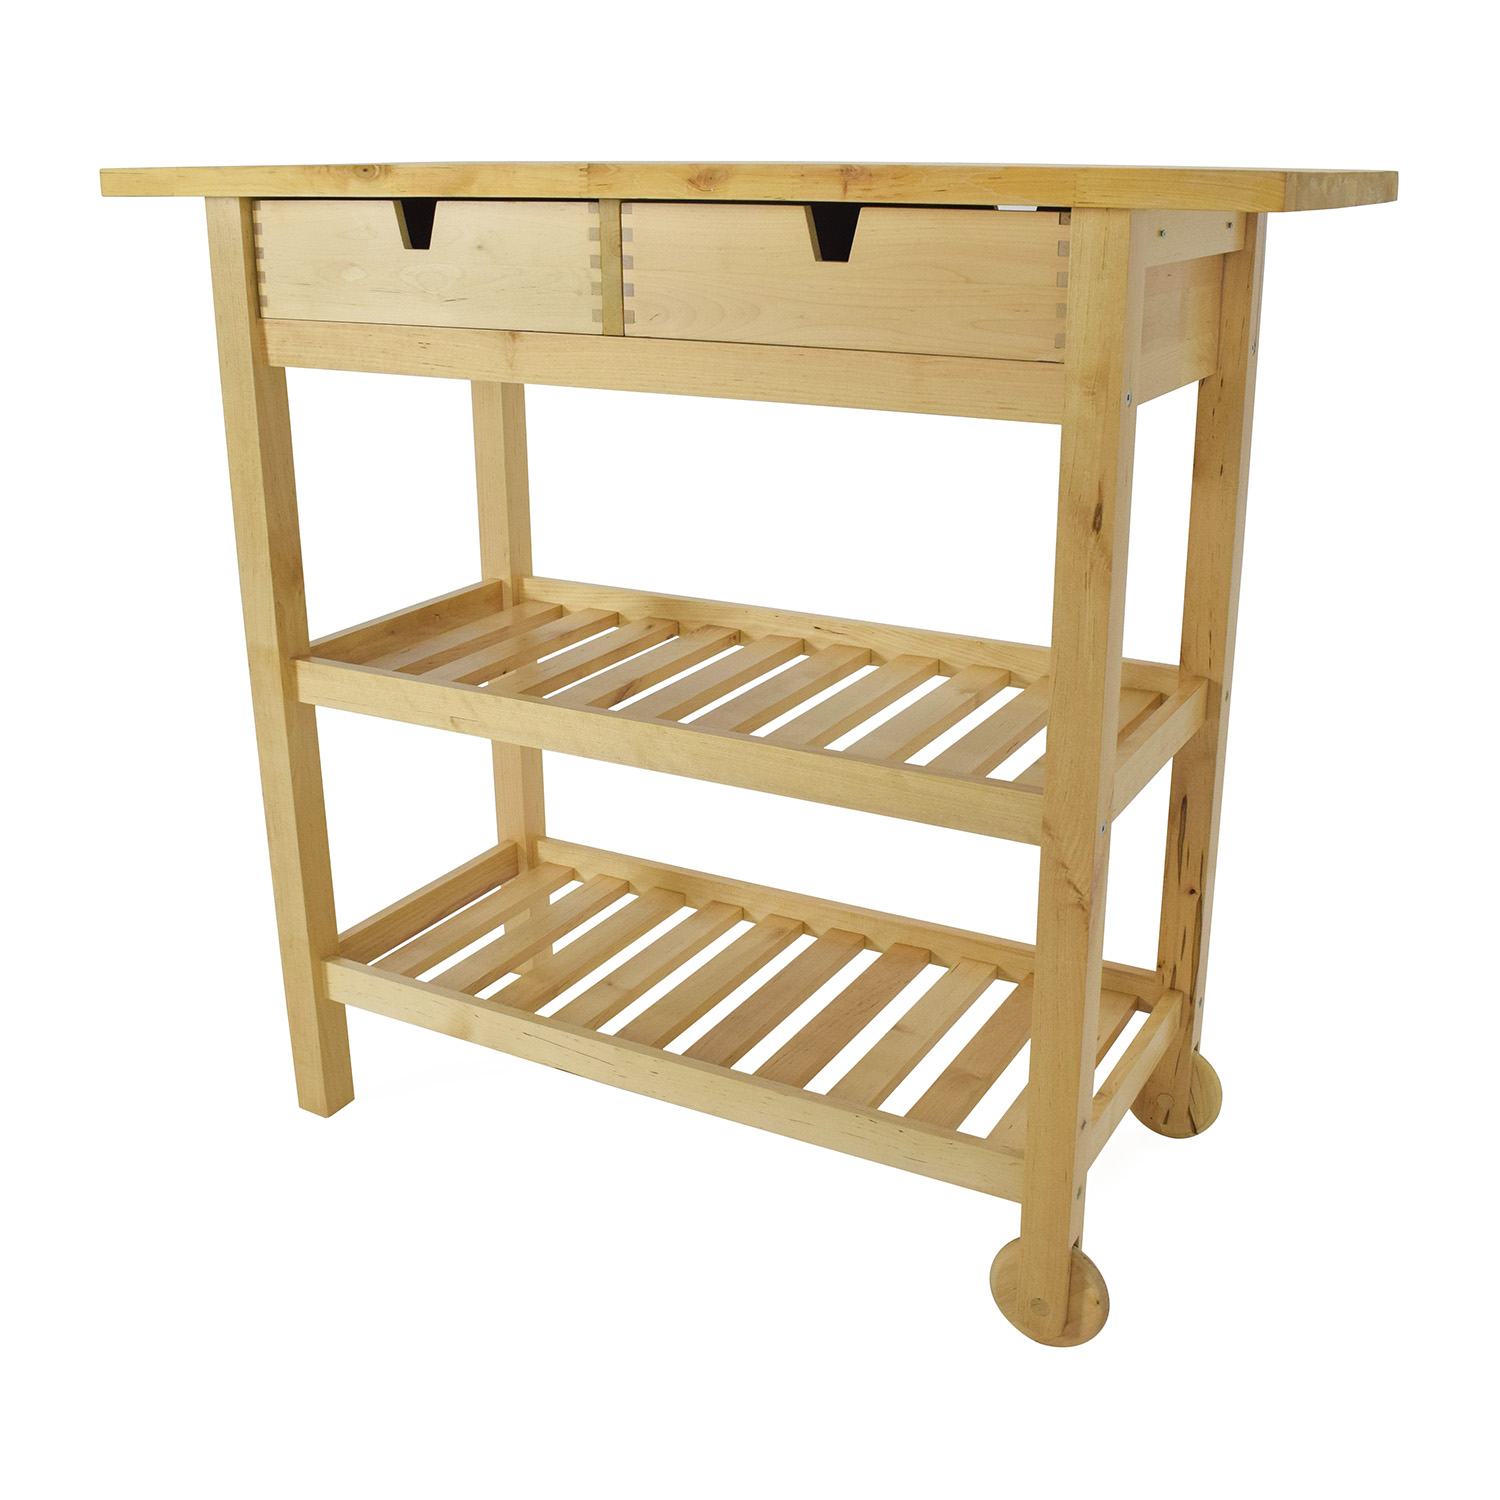 Ikea Tables Kitchen: IKEA Forhoja Kitchen Cart / Tables